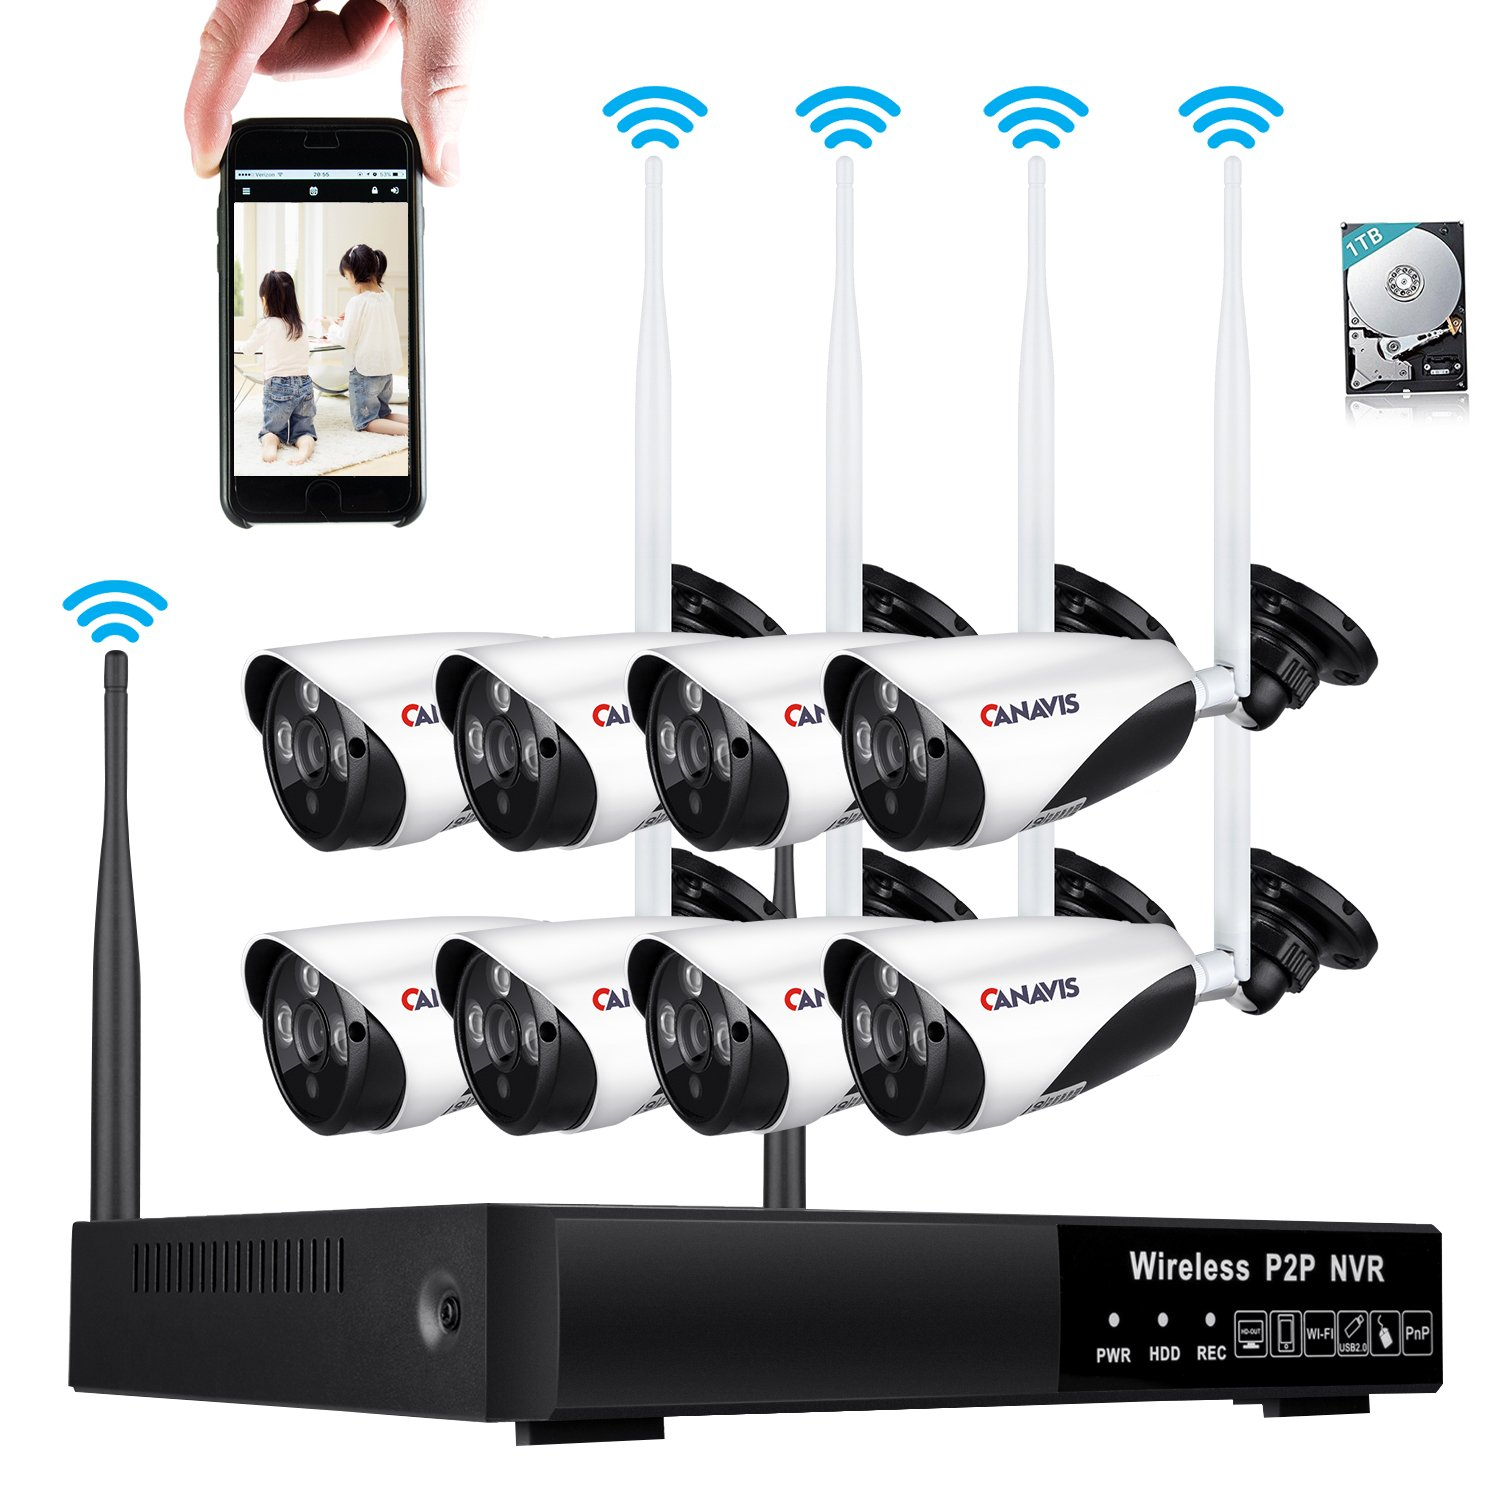 8CH Wireless Network Security Camera System 960P HD Surveillance CCTV NVR Video Recorder Kit 720P Wifi IR Outdoor Bullet IP Cam with 3.6mm Lens for Home, P2P, 100ft Night Vision 1TB HDD Remote Viewing